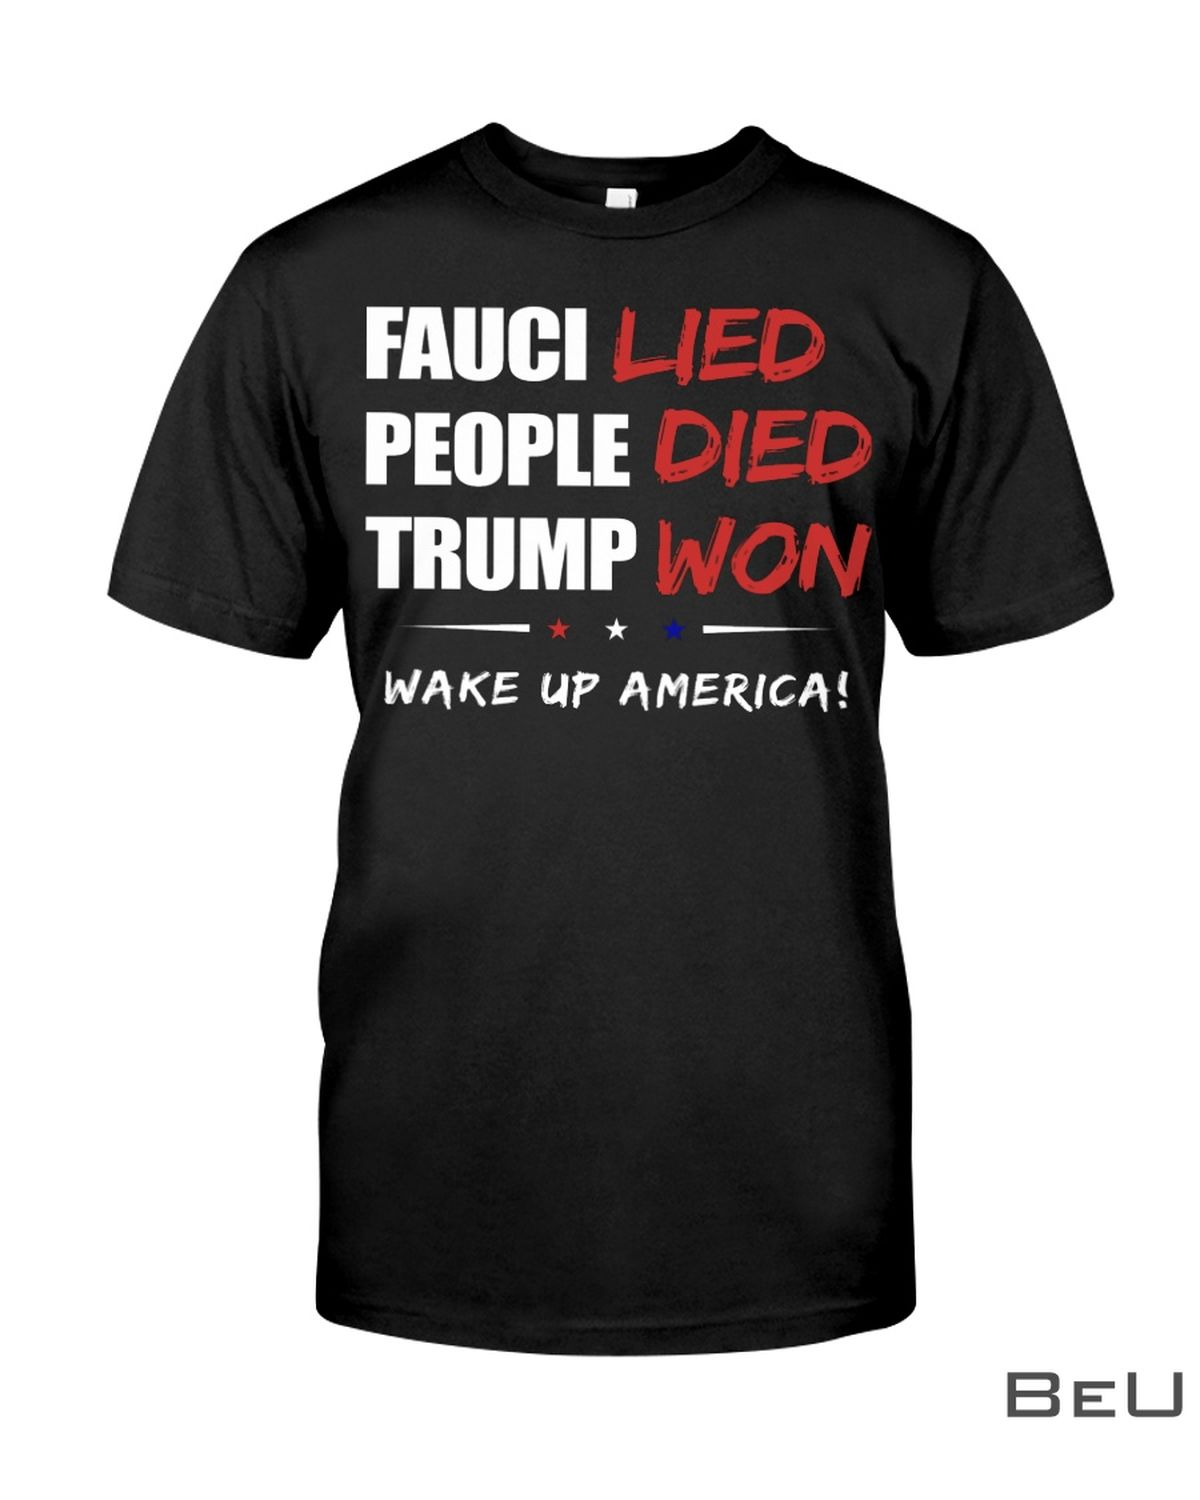 Fauci Lied People Died Trup Won Wake Up America Shirt